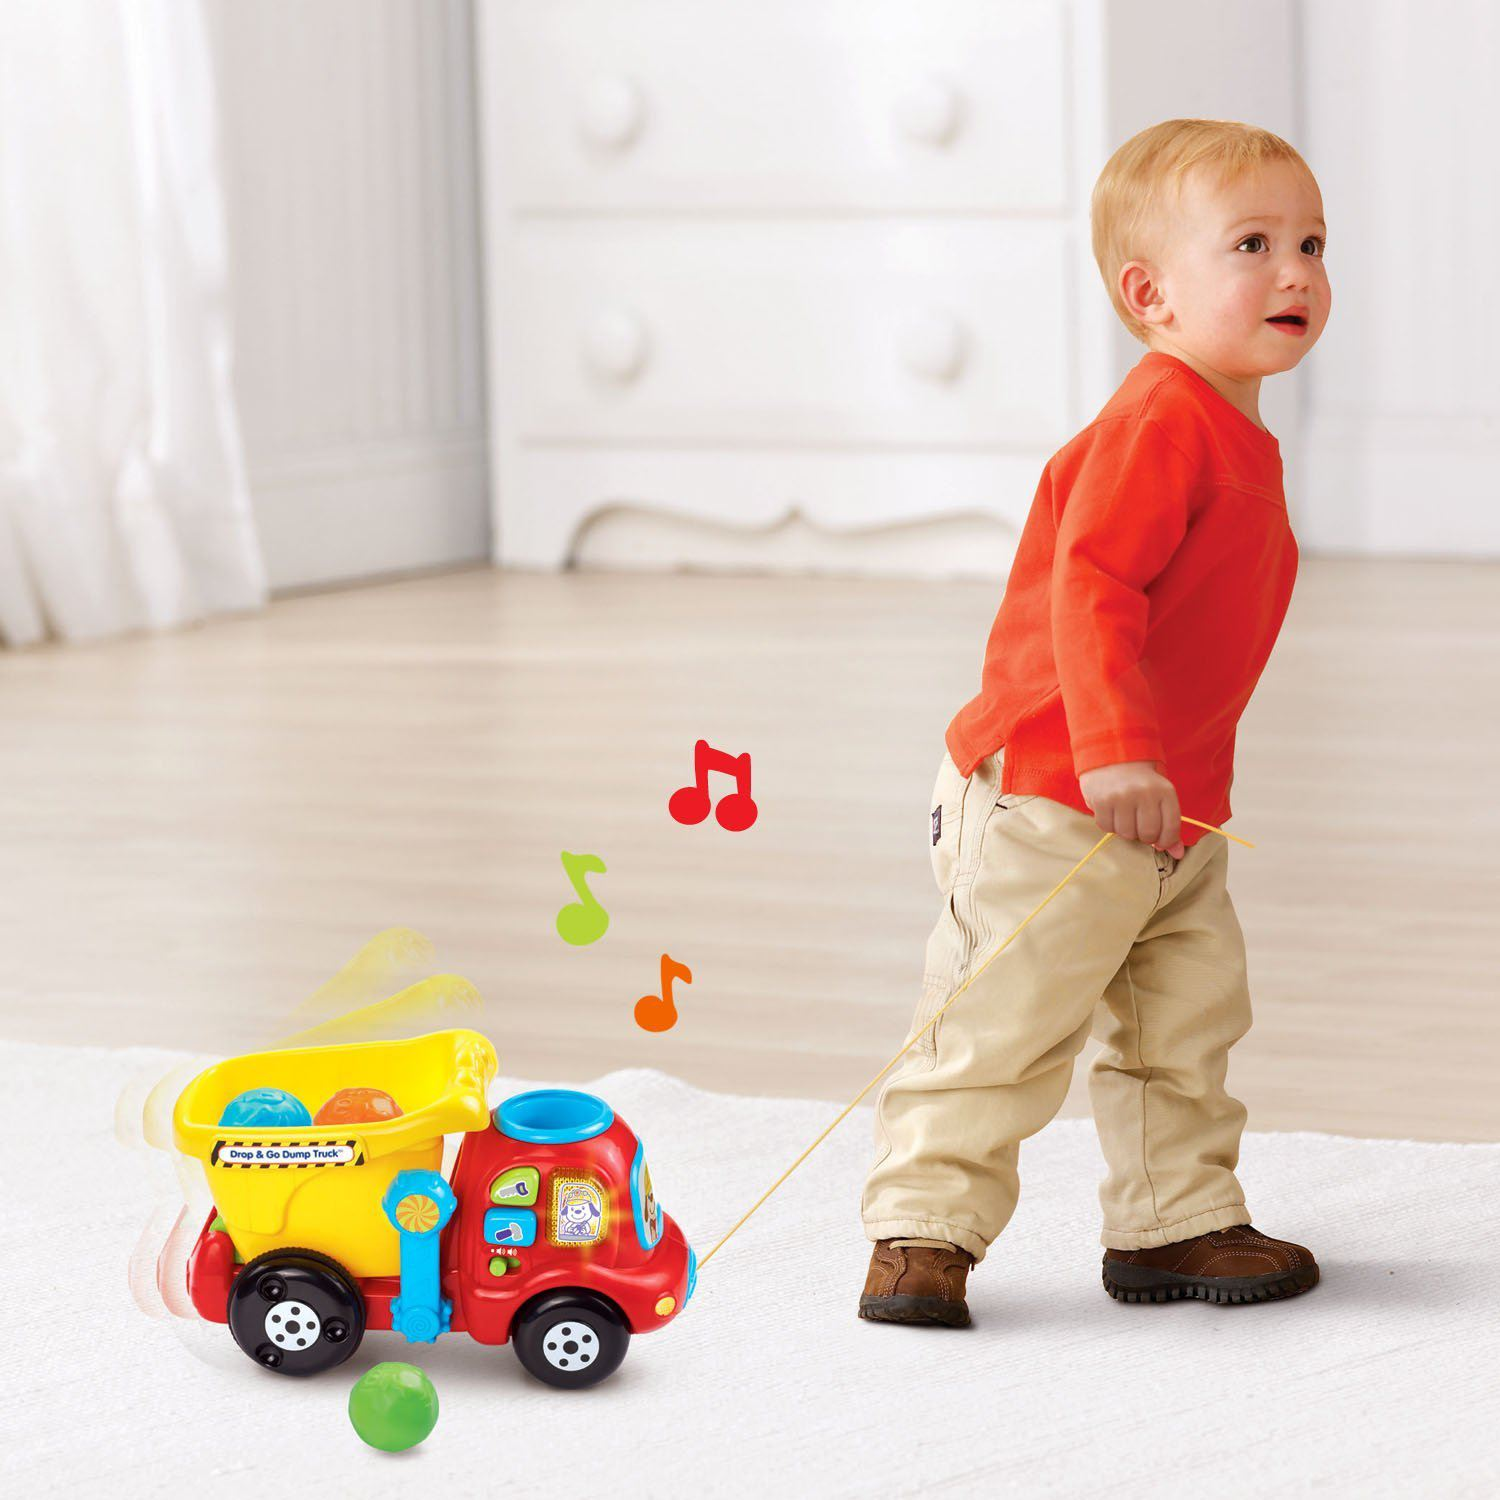 a860f76393a1 The 10 Best Toys for 15 Month Olds of 2019